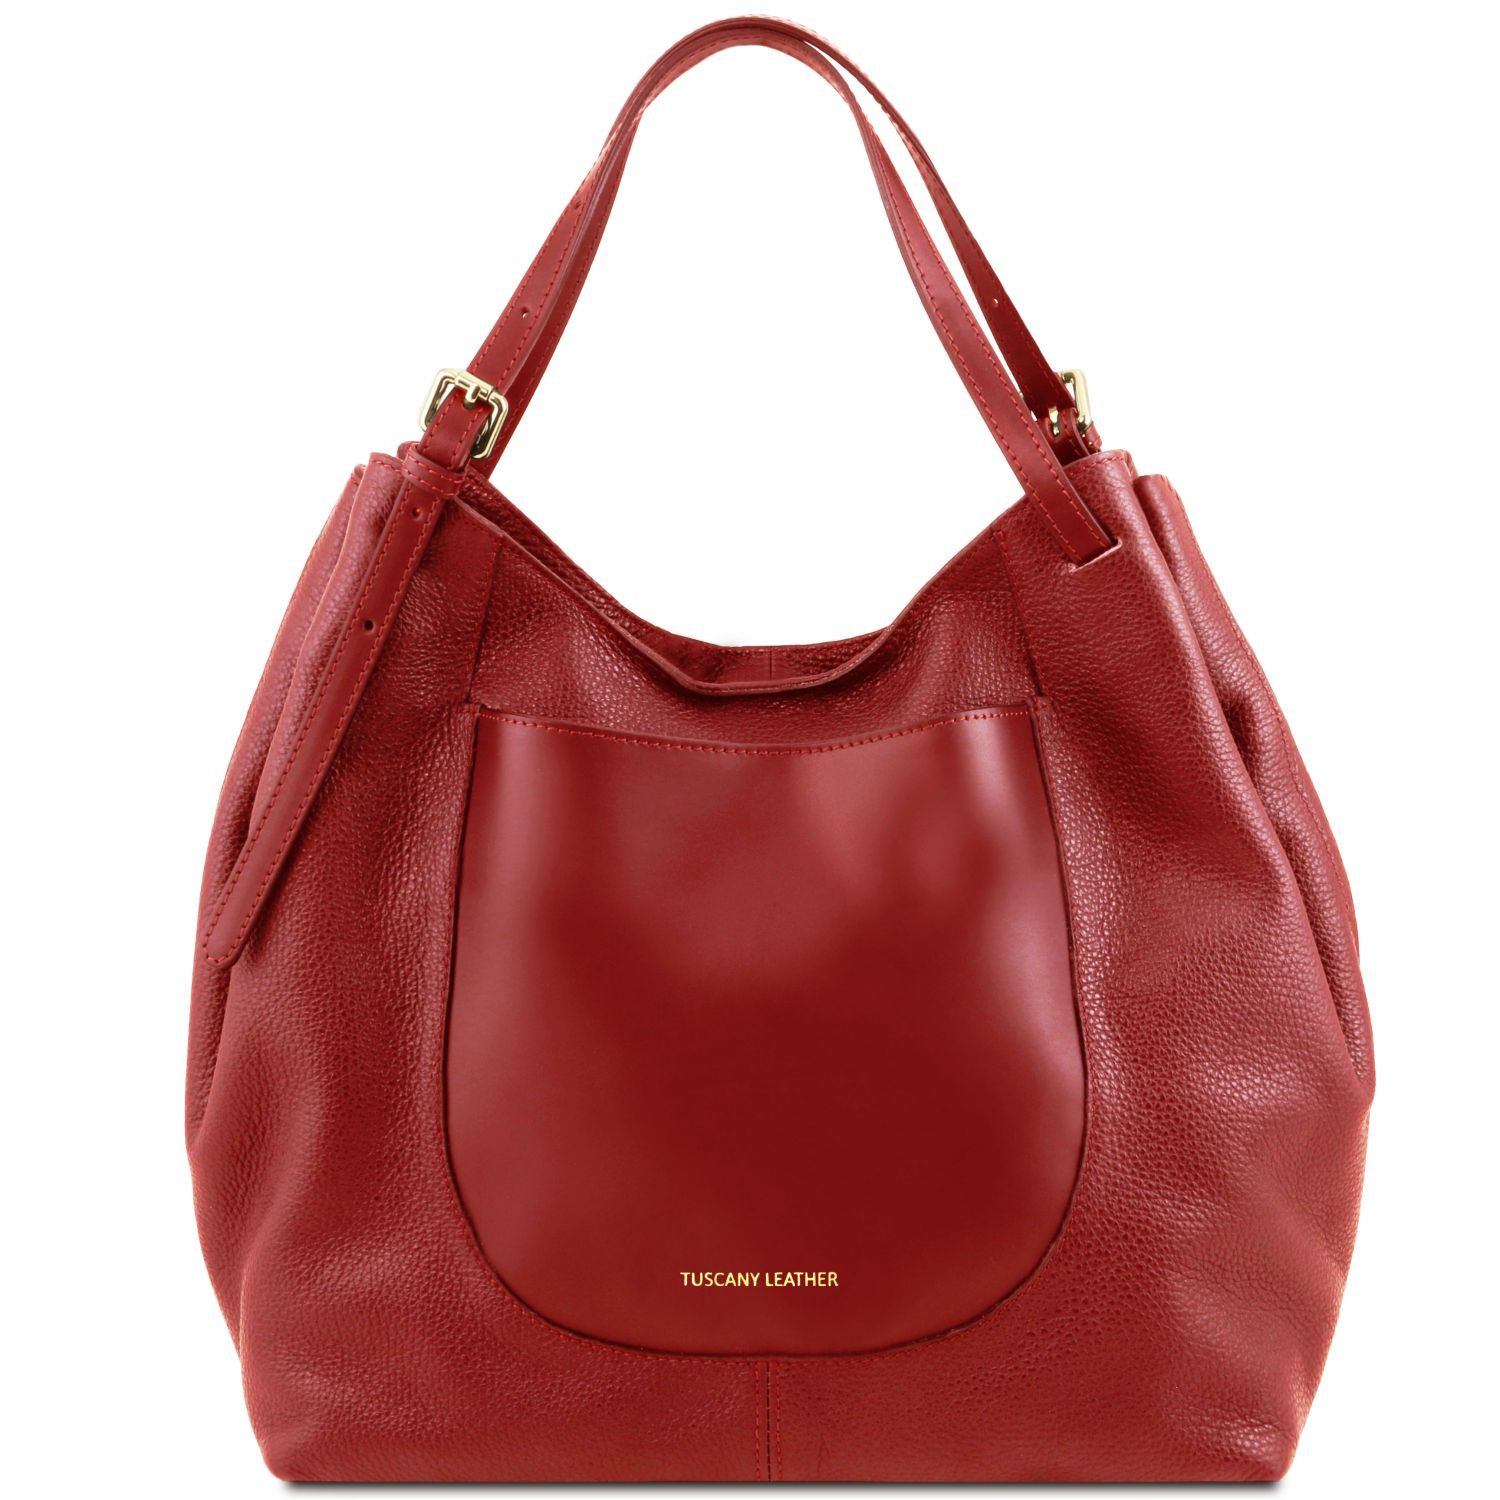 Cinzia - Soft leather shopping bag (TL141515) - Leather shoulder bags | DILUSSOBAGS